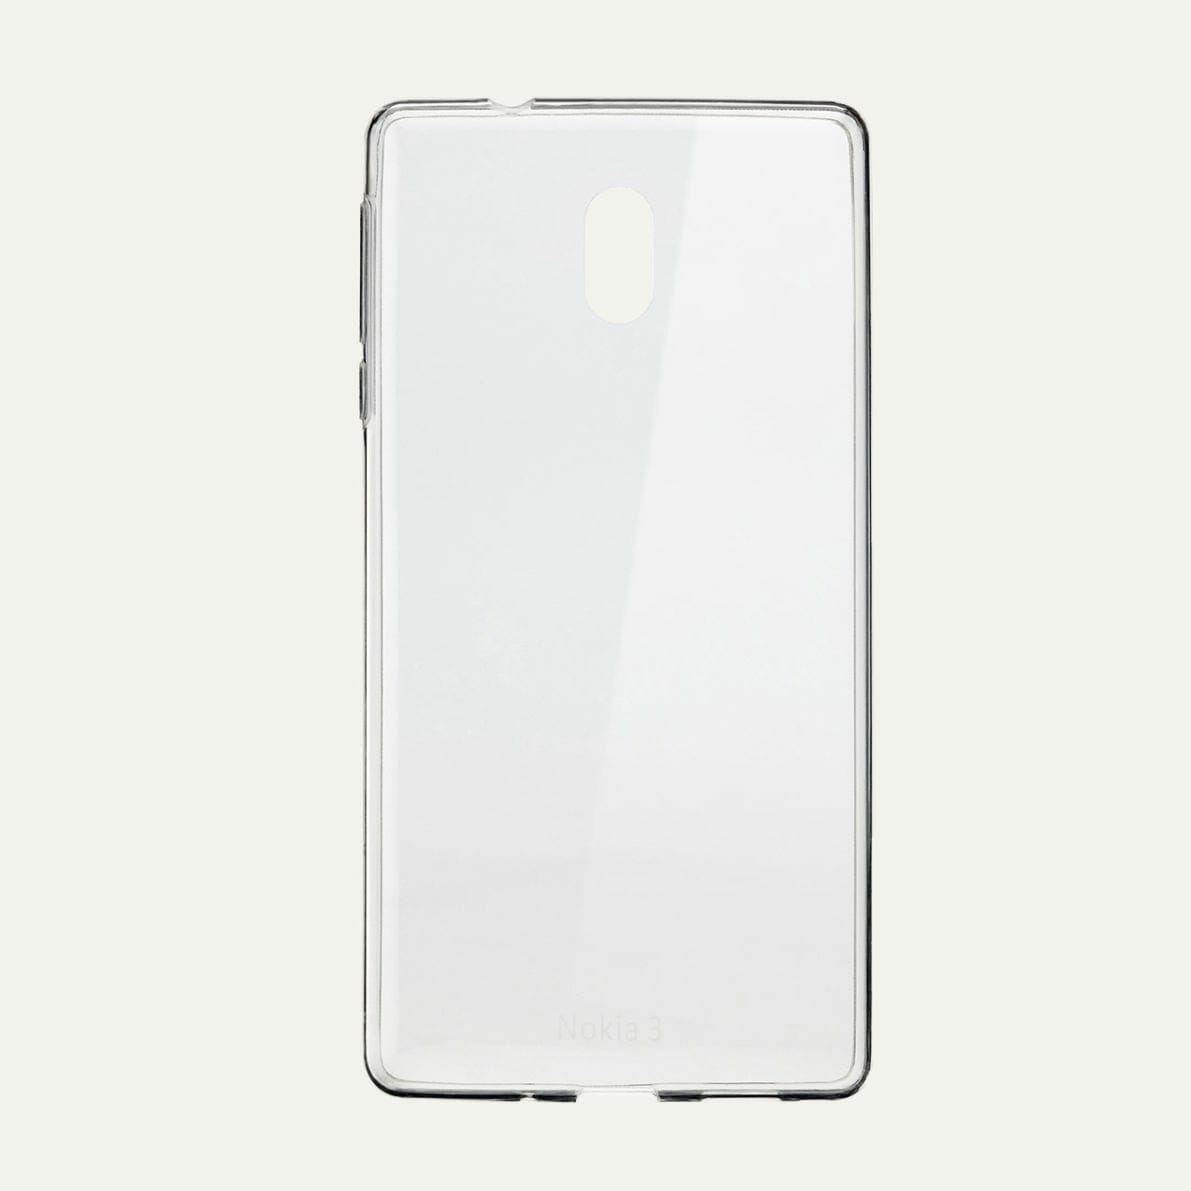 Official Cases For Nokia 6 Nokia 7 Plus And Nokia 8 Covers Protectors